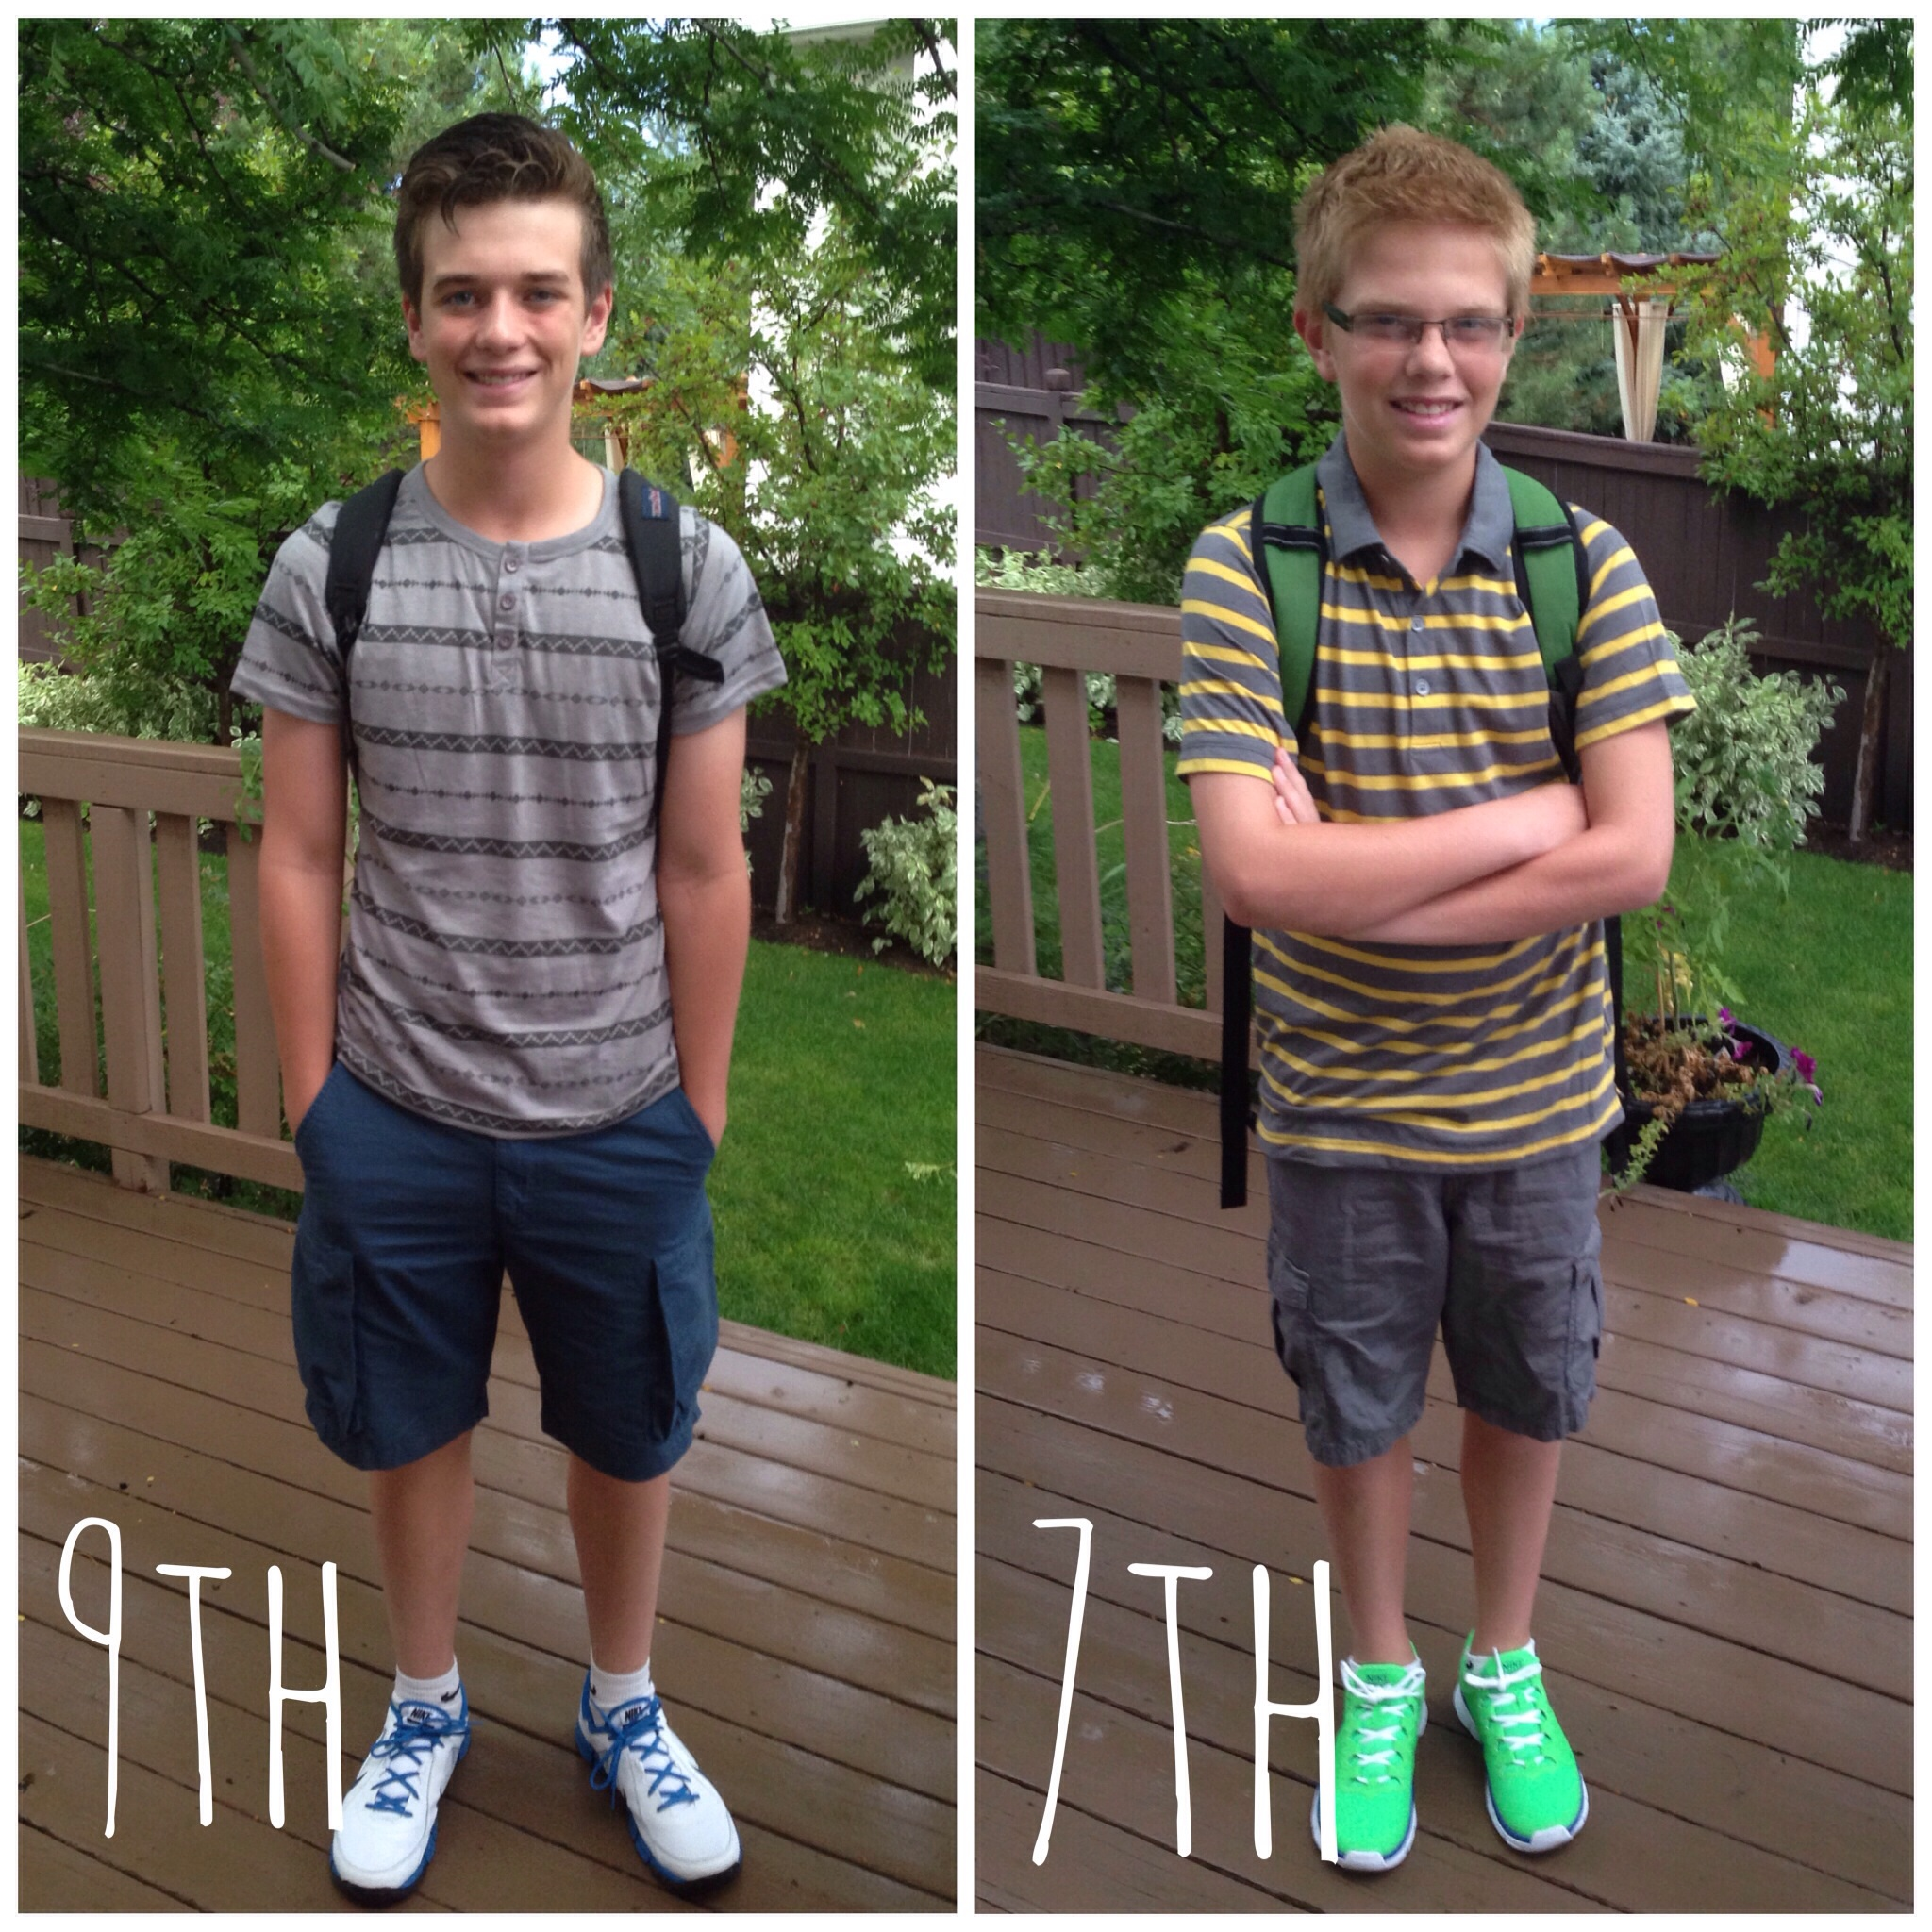 Boys 1st day if school 2014